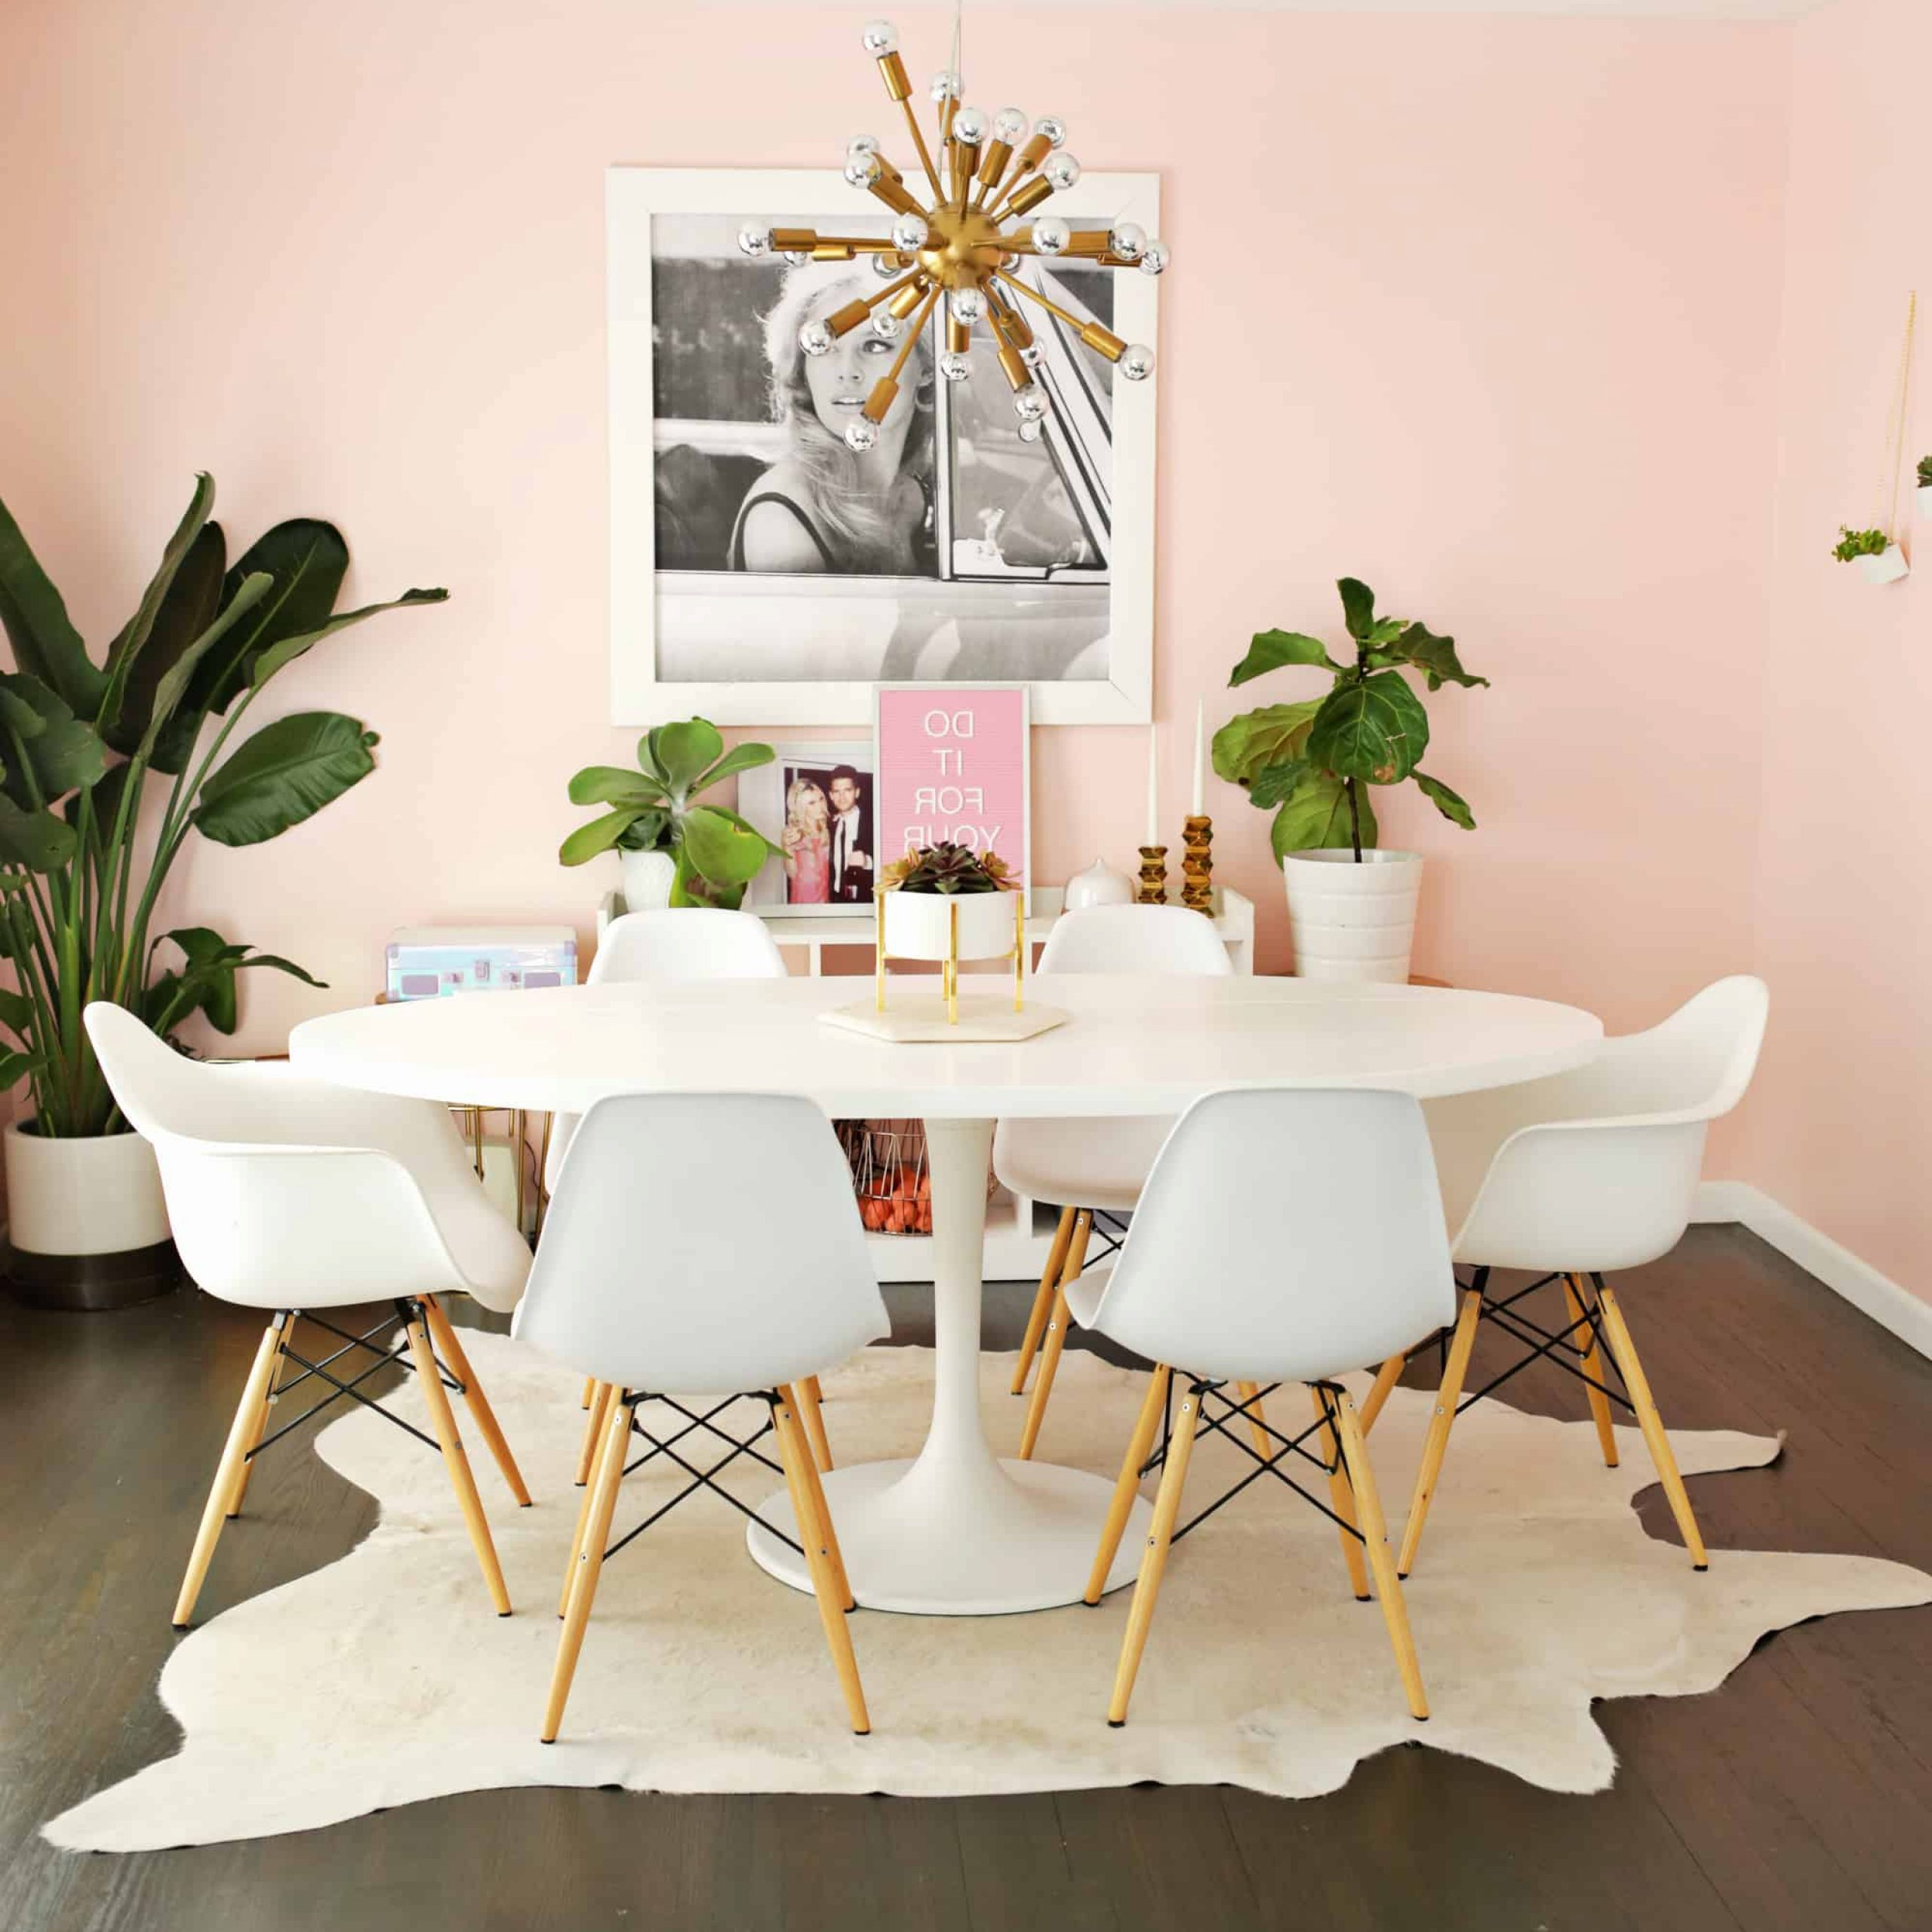 Recent Ikea Docksta Table Hack! - A Beautiful Mess in Chapman Round Marble Dining Tables